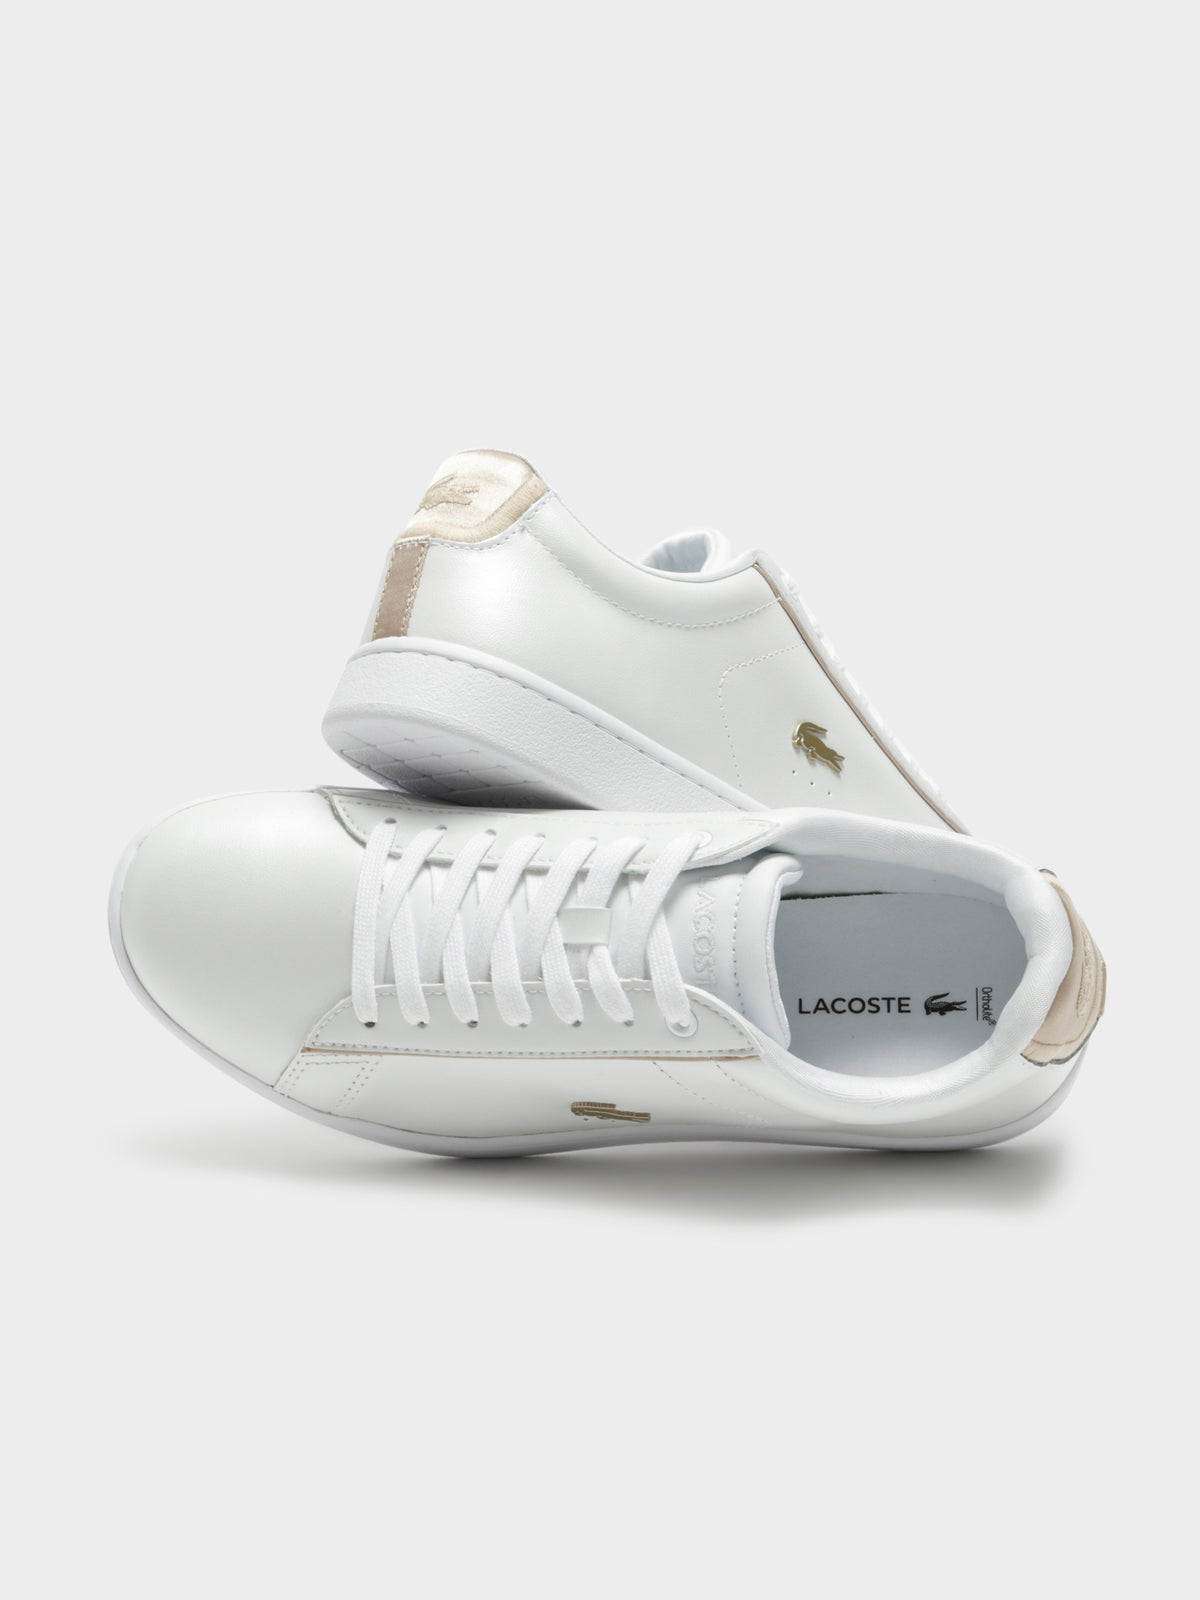 Womens Carnaby Evo 118 Sneakers in White & Gold Leather